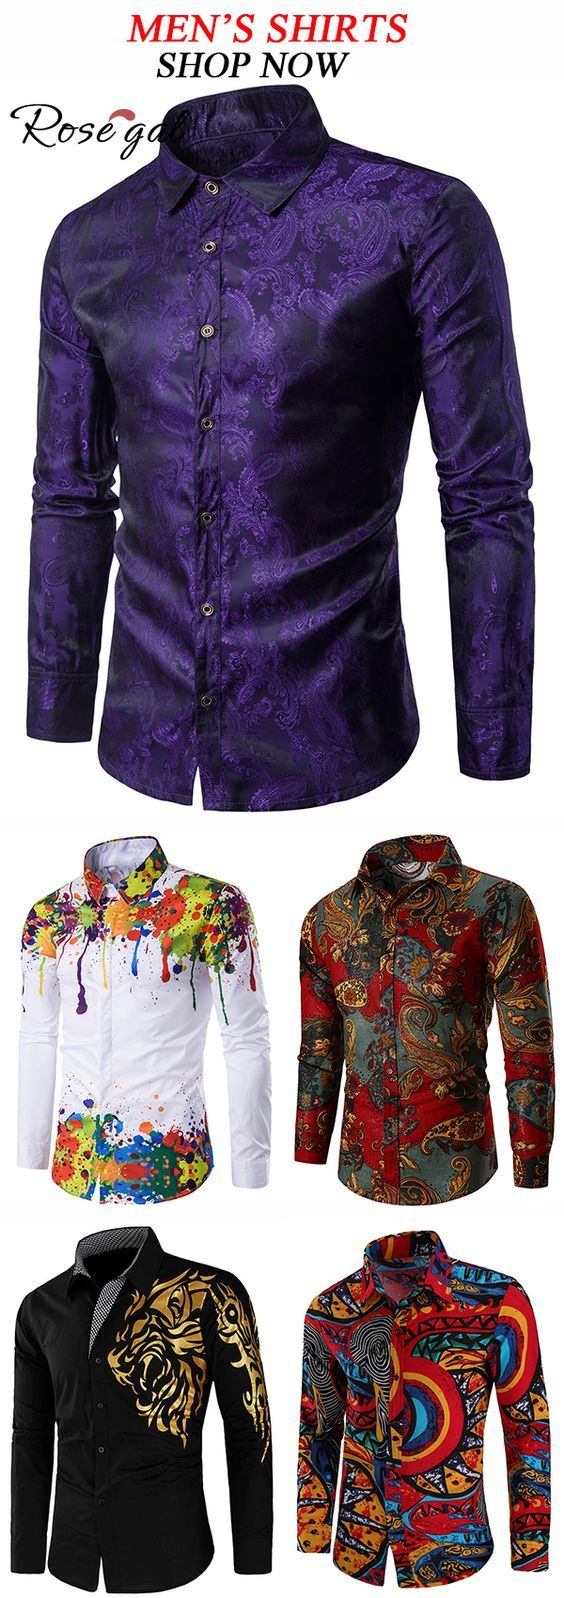 Mens shirt fashion for spring and summer Rosegal mensfashion is part of food-recipes - food-recipes